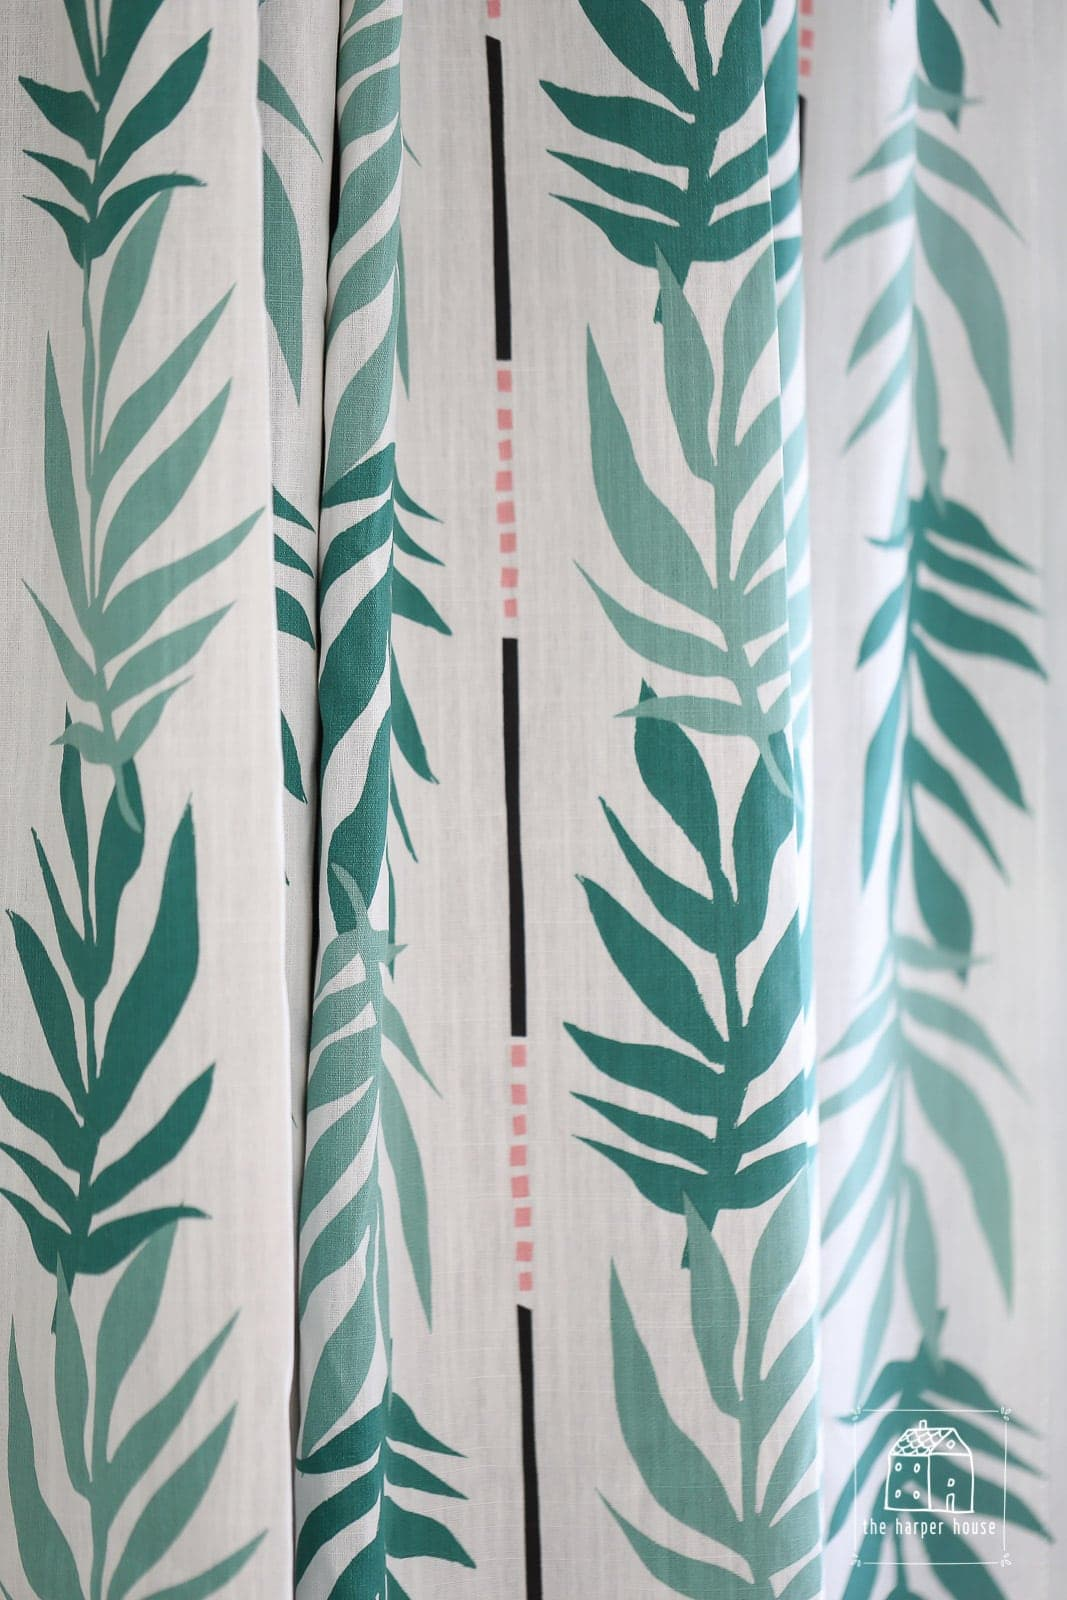 Drew Barrymore Flower Home Vintage Palm Curtain fabric